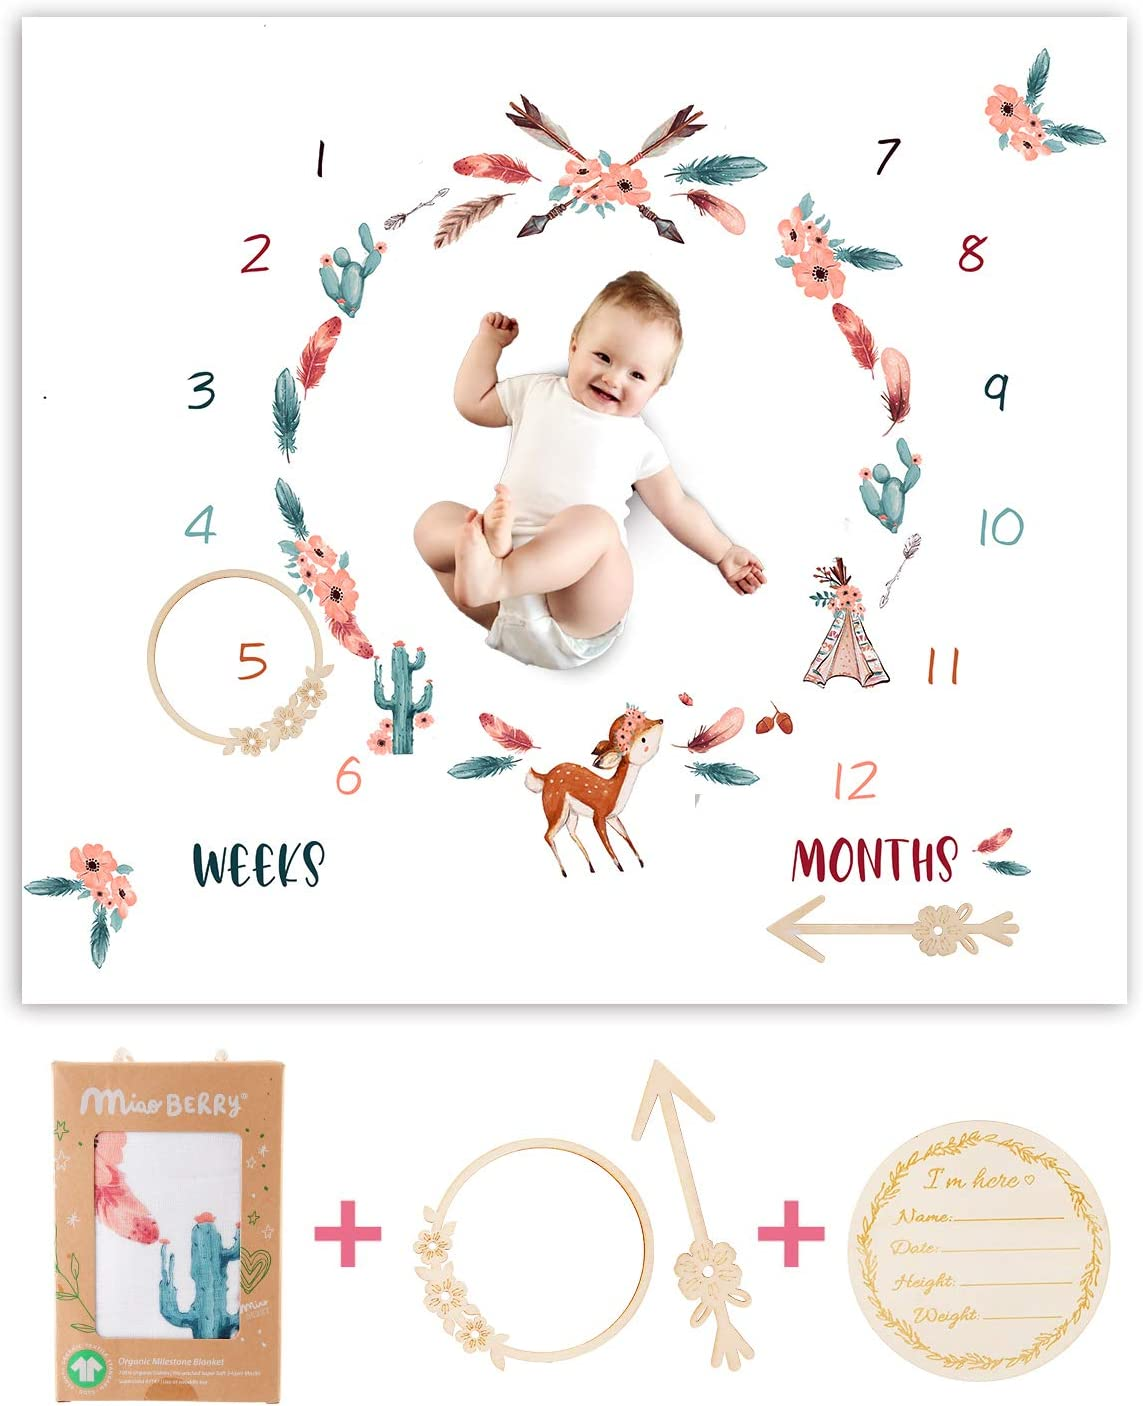 Organic Baby Monthly Milestone Blanket Newborn Boho Deer Girl| Fawn Cactus Teepee Tribe Baby Nursery Month Picture Blanket| Growth Photography Background Prop| Woodland Friends Animals